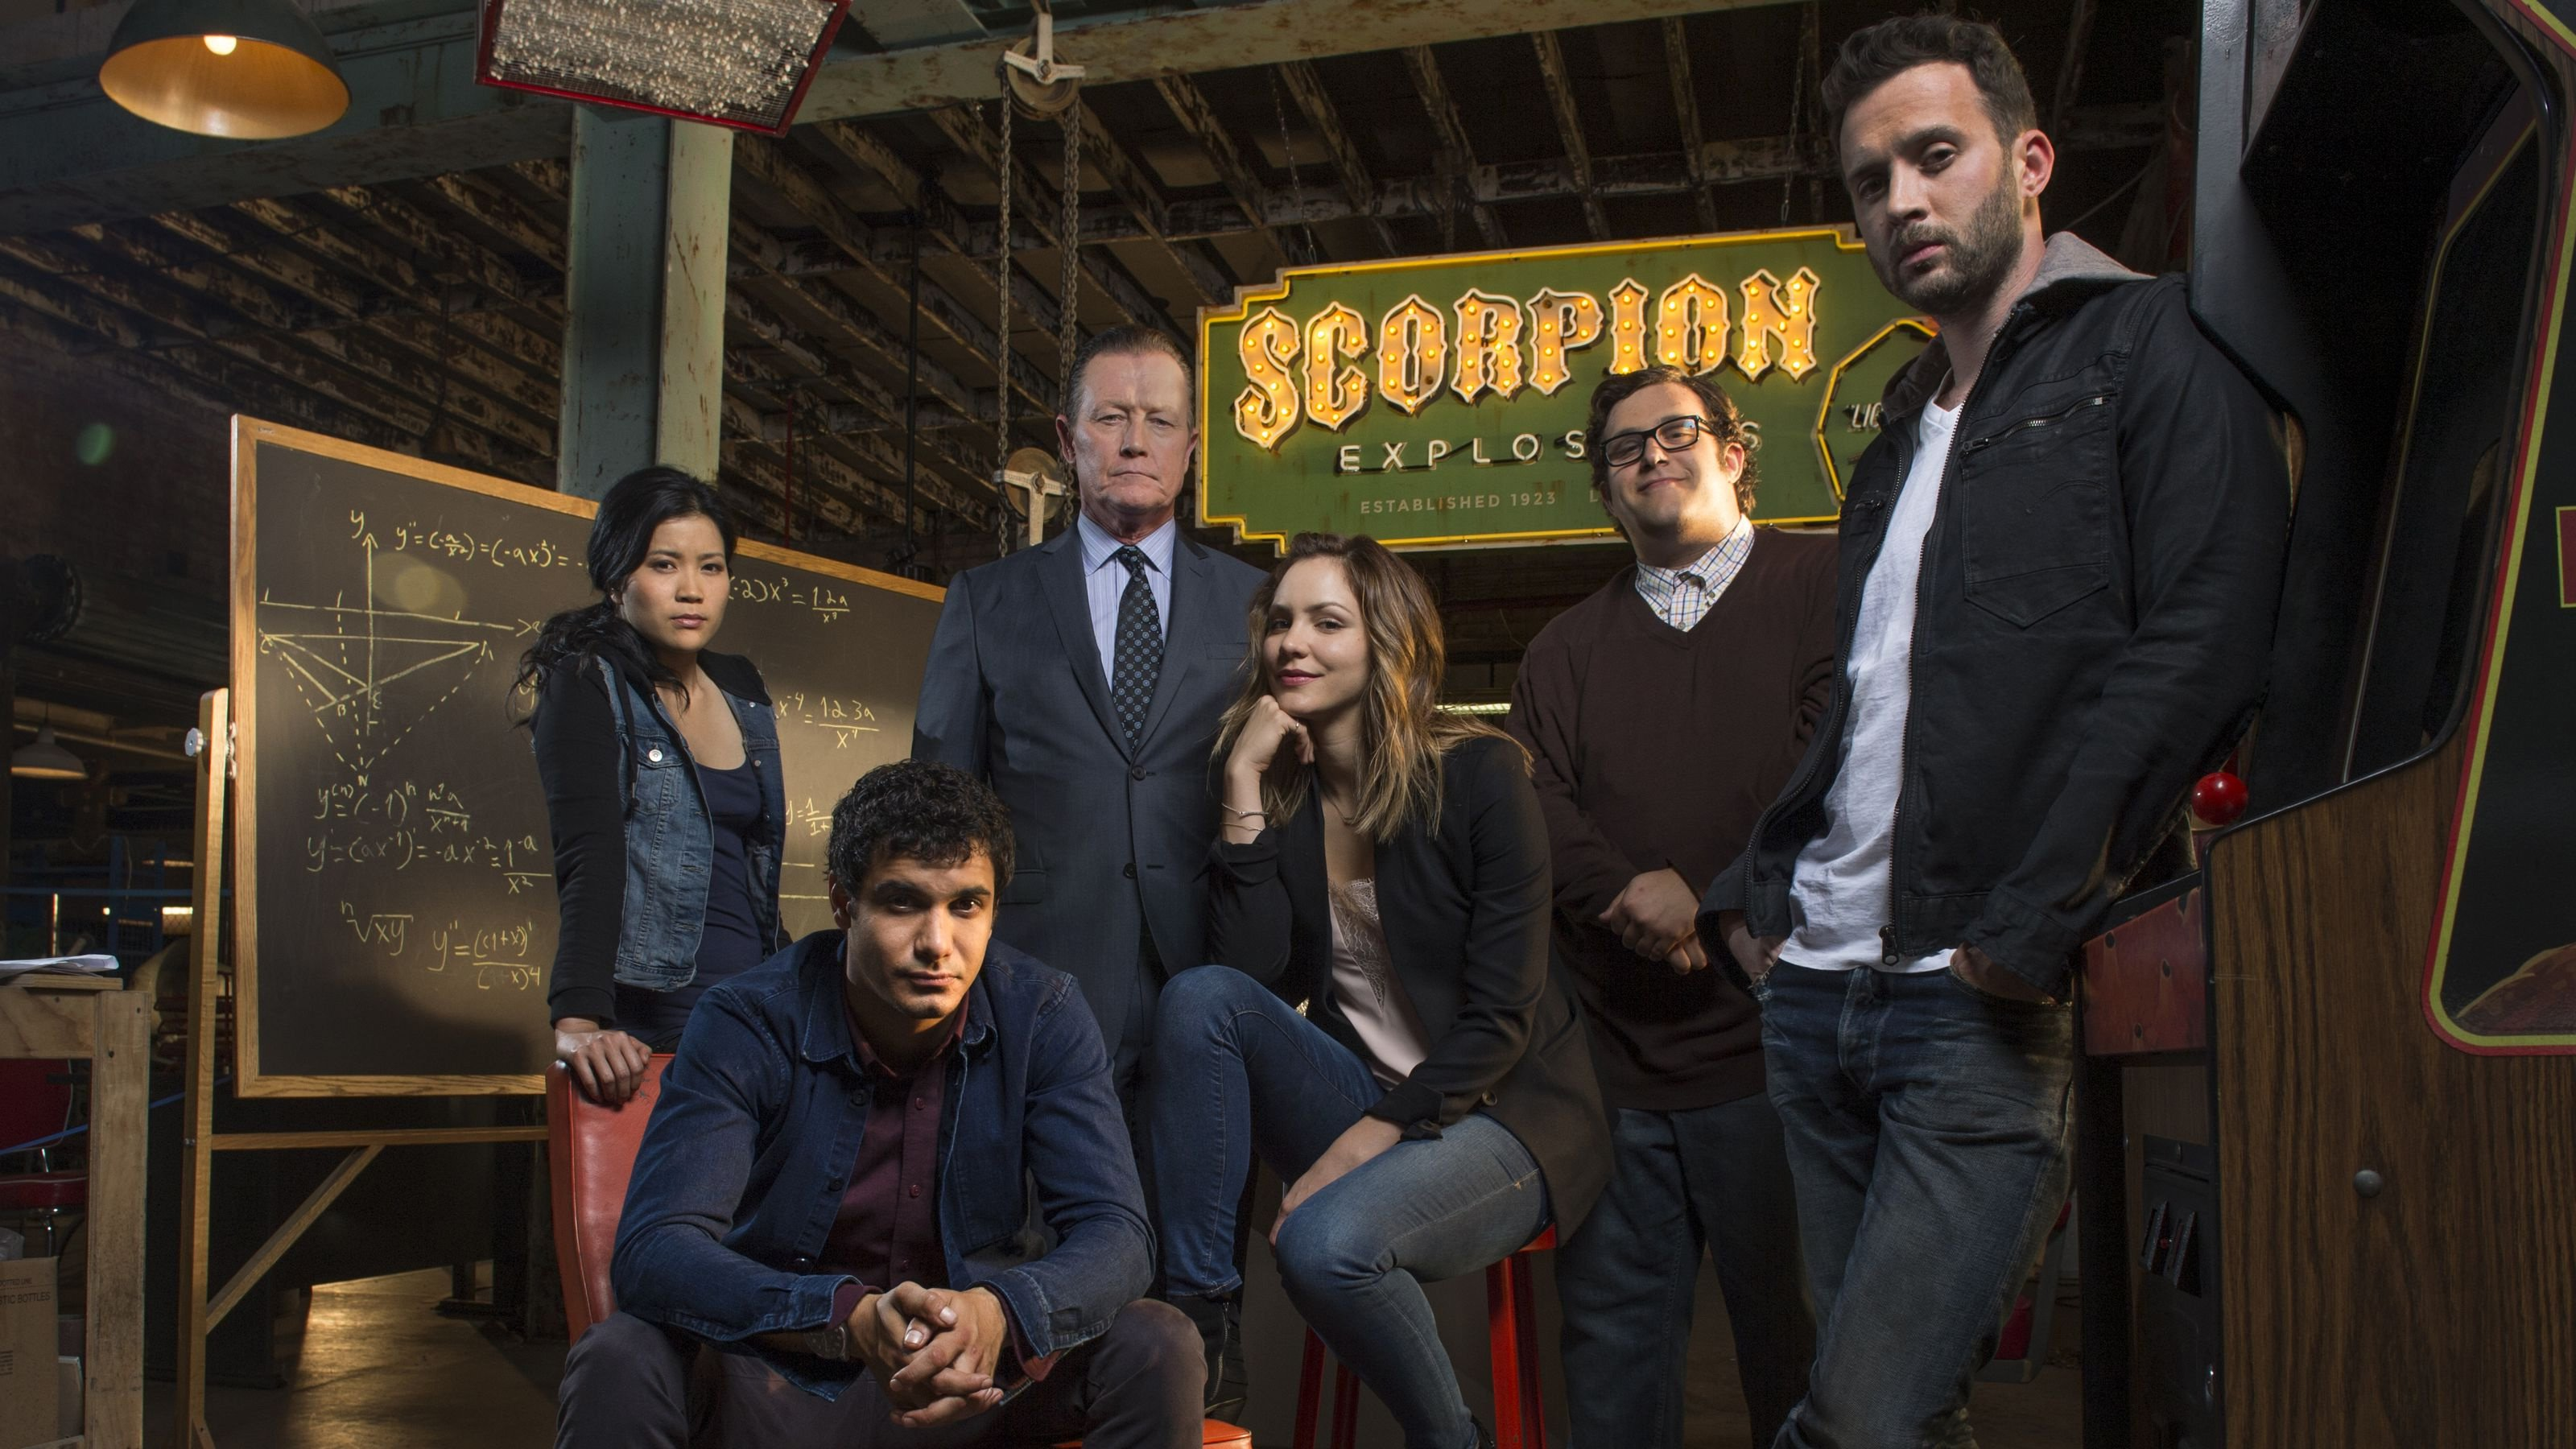 Scorpion Tv Show Hd Hd Tv Shows 4k Wallpapers Images Backgrounds